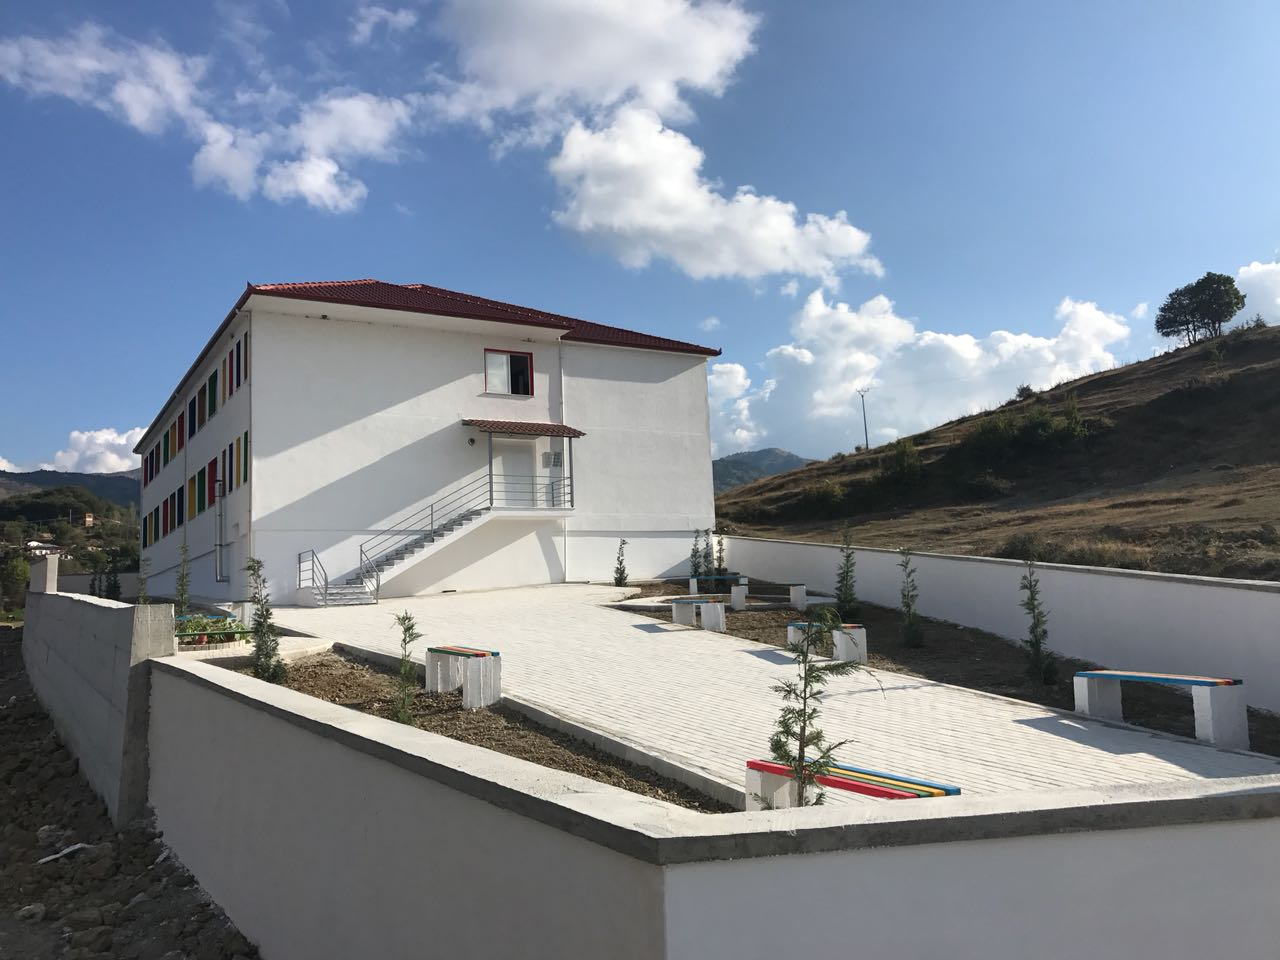 Construction of a new school in the village of Kamenice, Korce Municipality